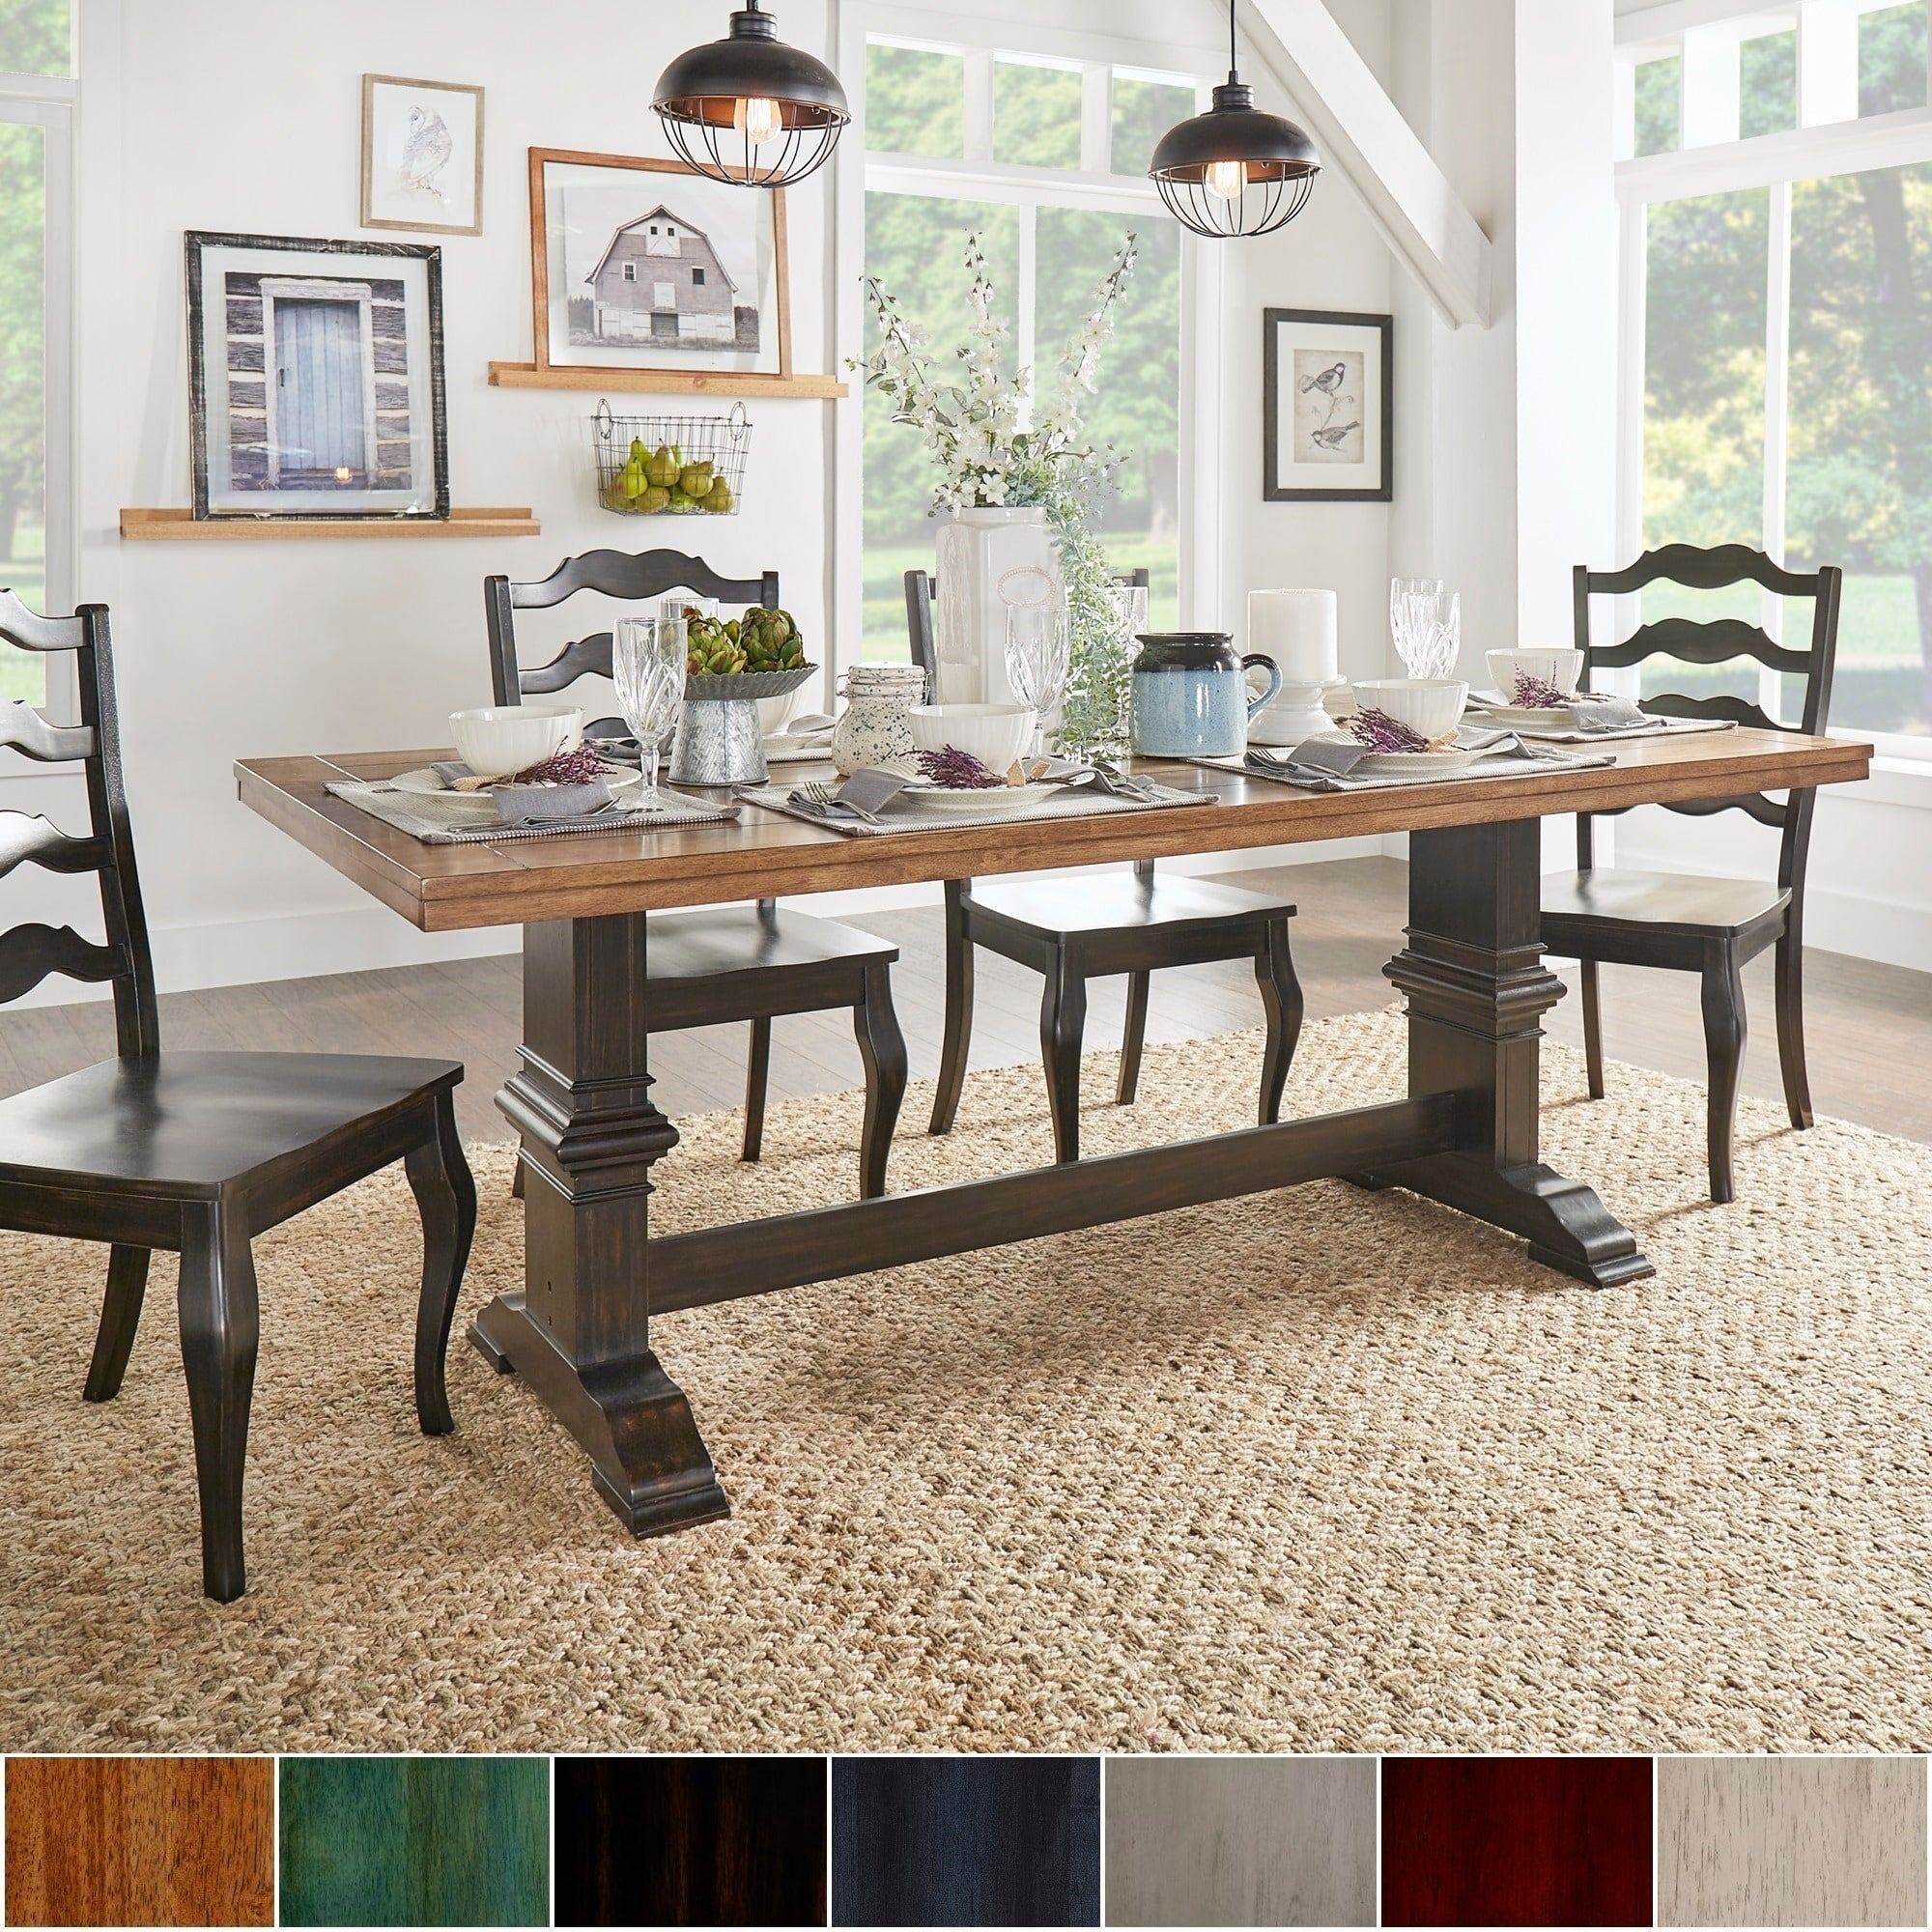 Two-tone Rectangular Solid Wood Top Dining Table